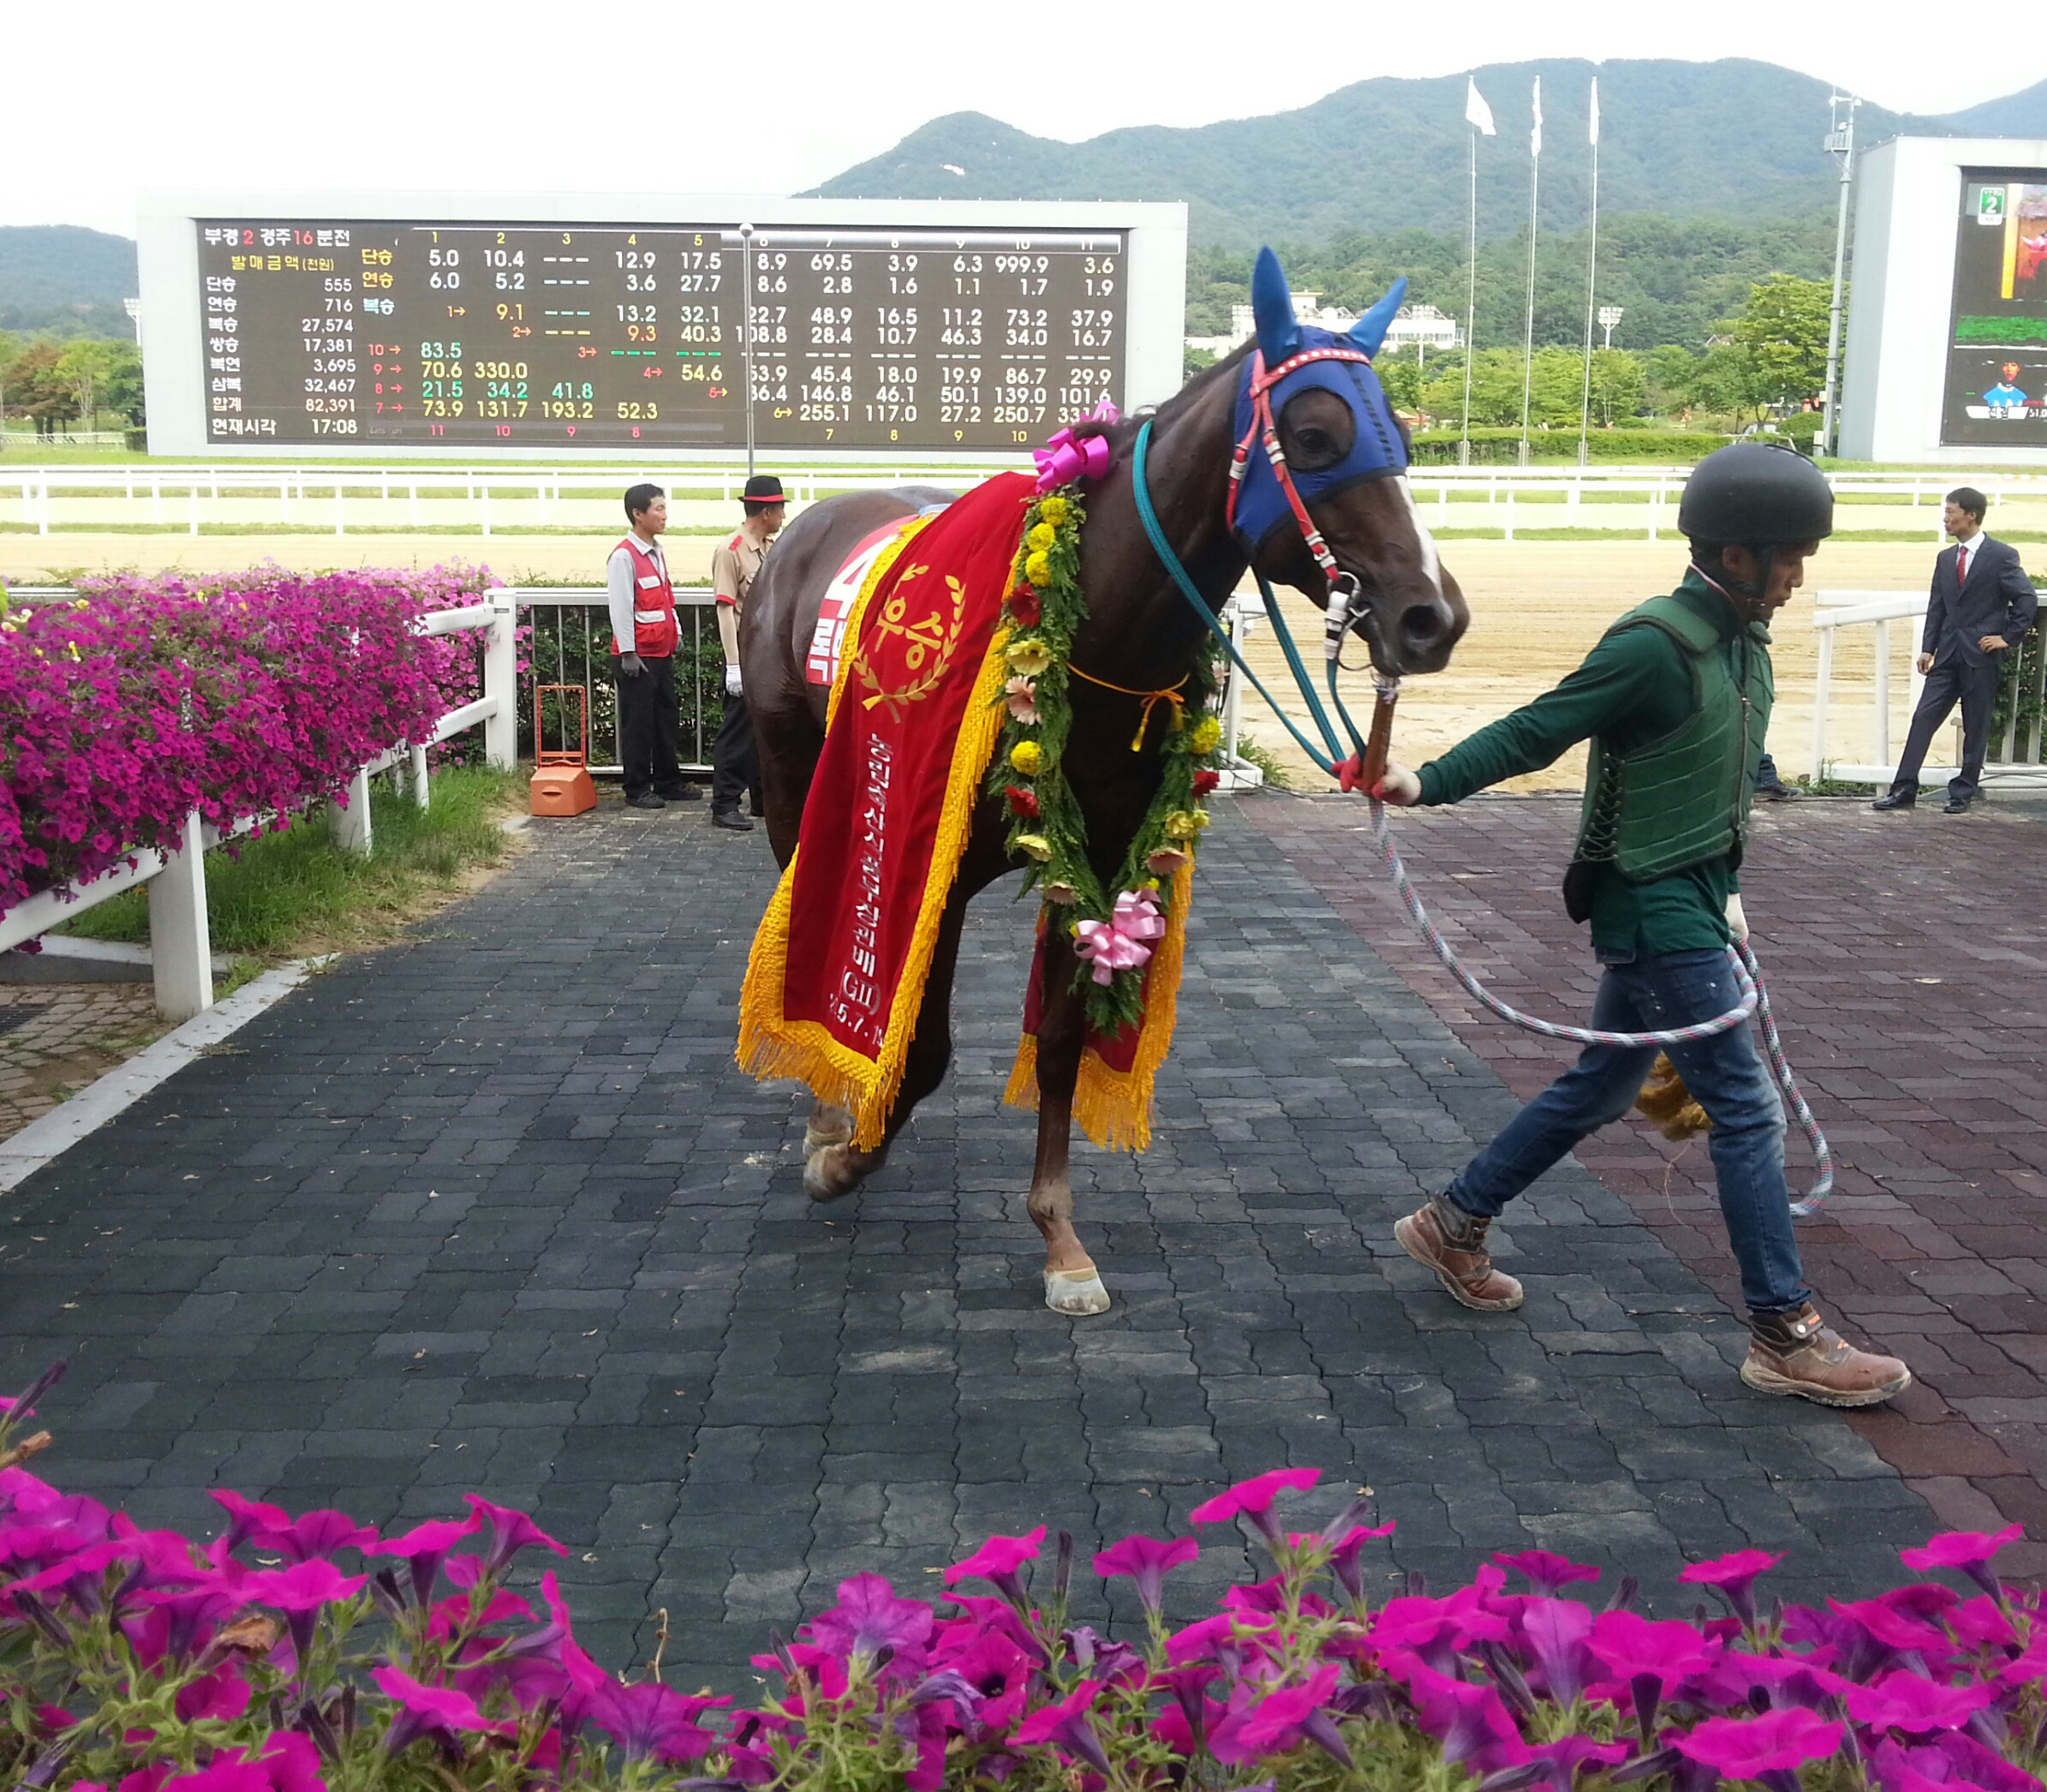 Horse racing winners circle pictures